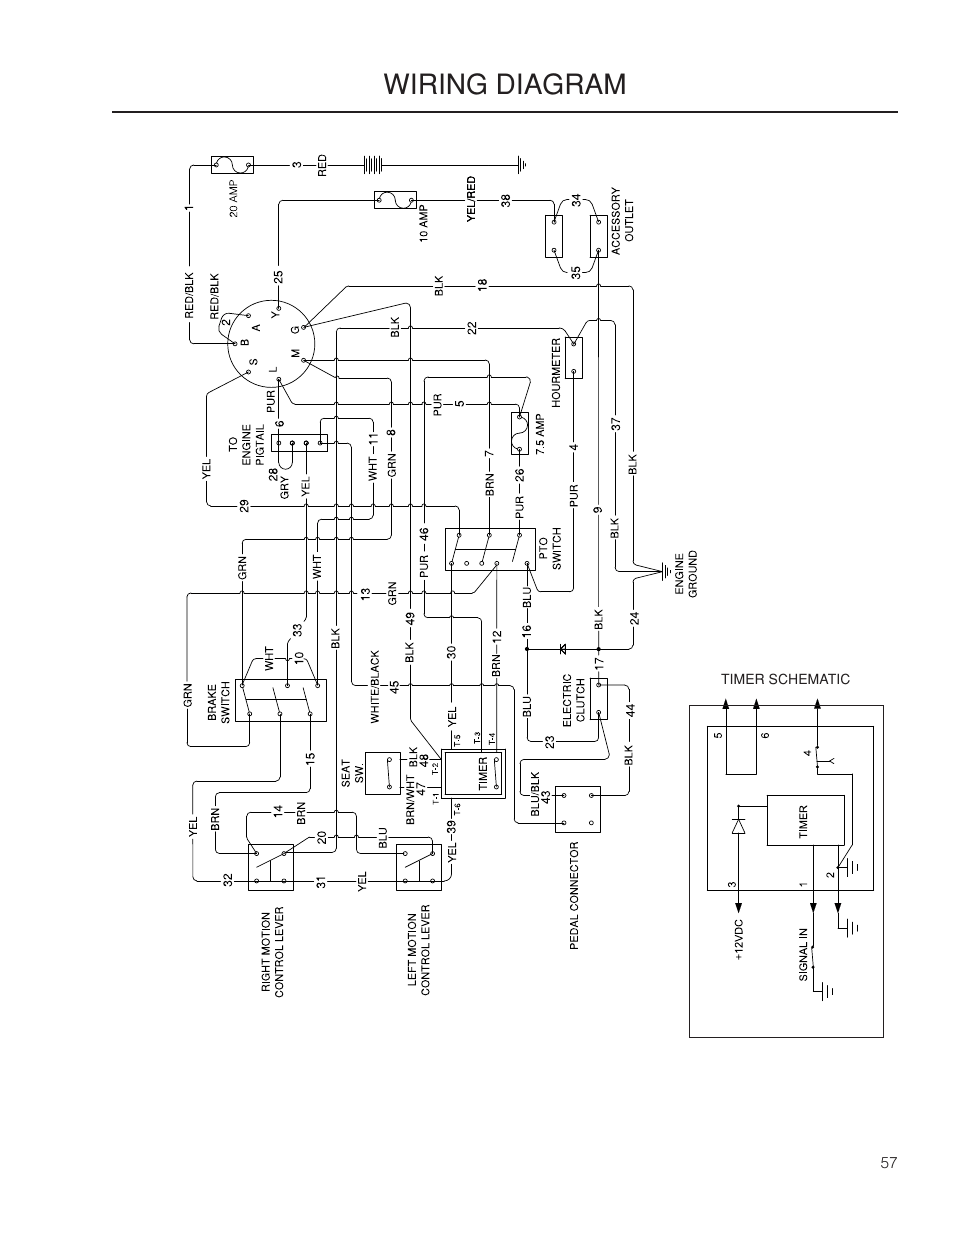 medium resolution of wiring diagrams wiring diagram dixon grizzly se 966516601 user manual page 57